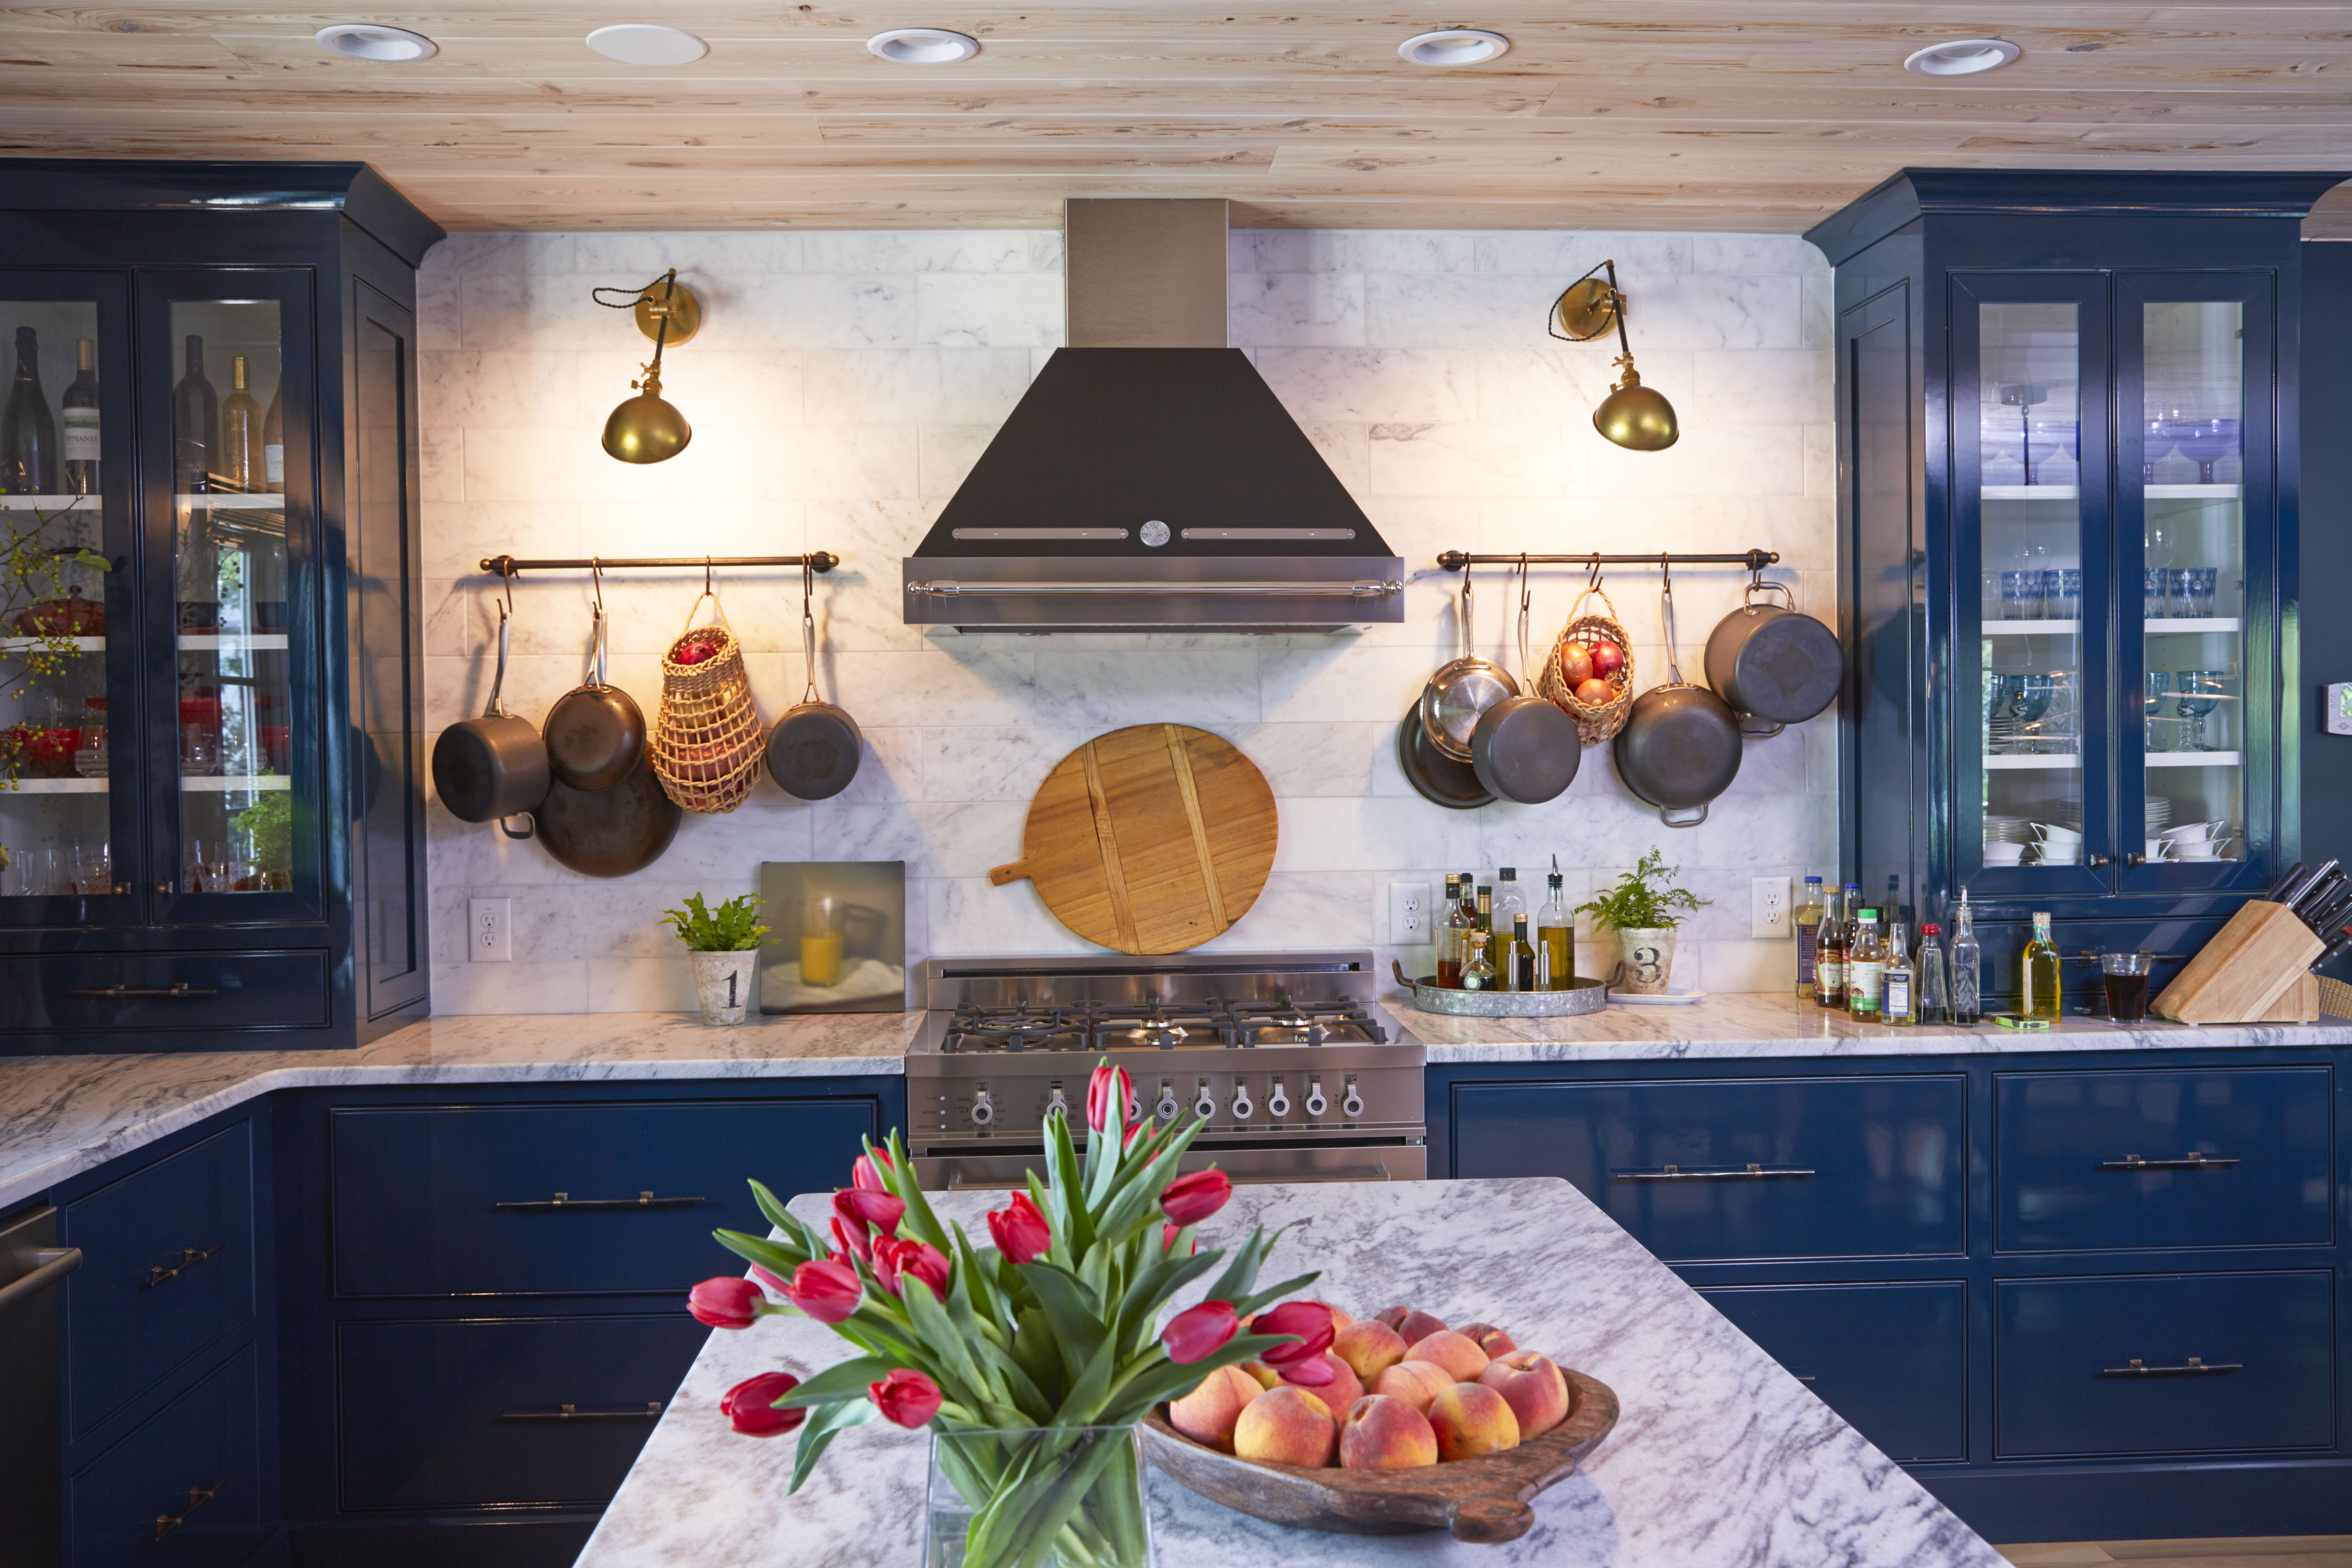 pam-sessions-hedgewood-homes-georgia-marble-kitchen-island